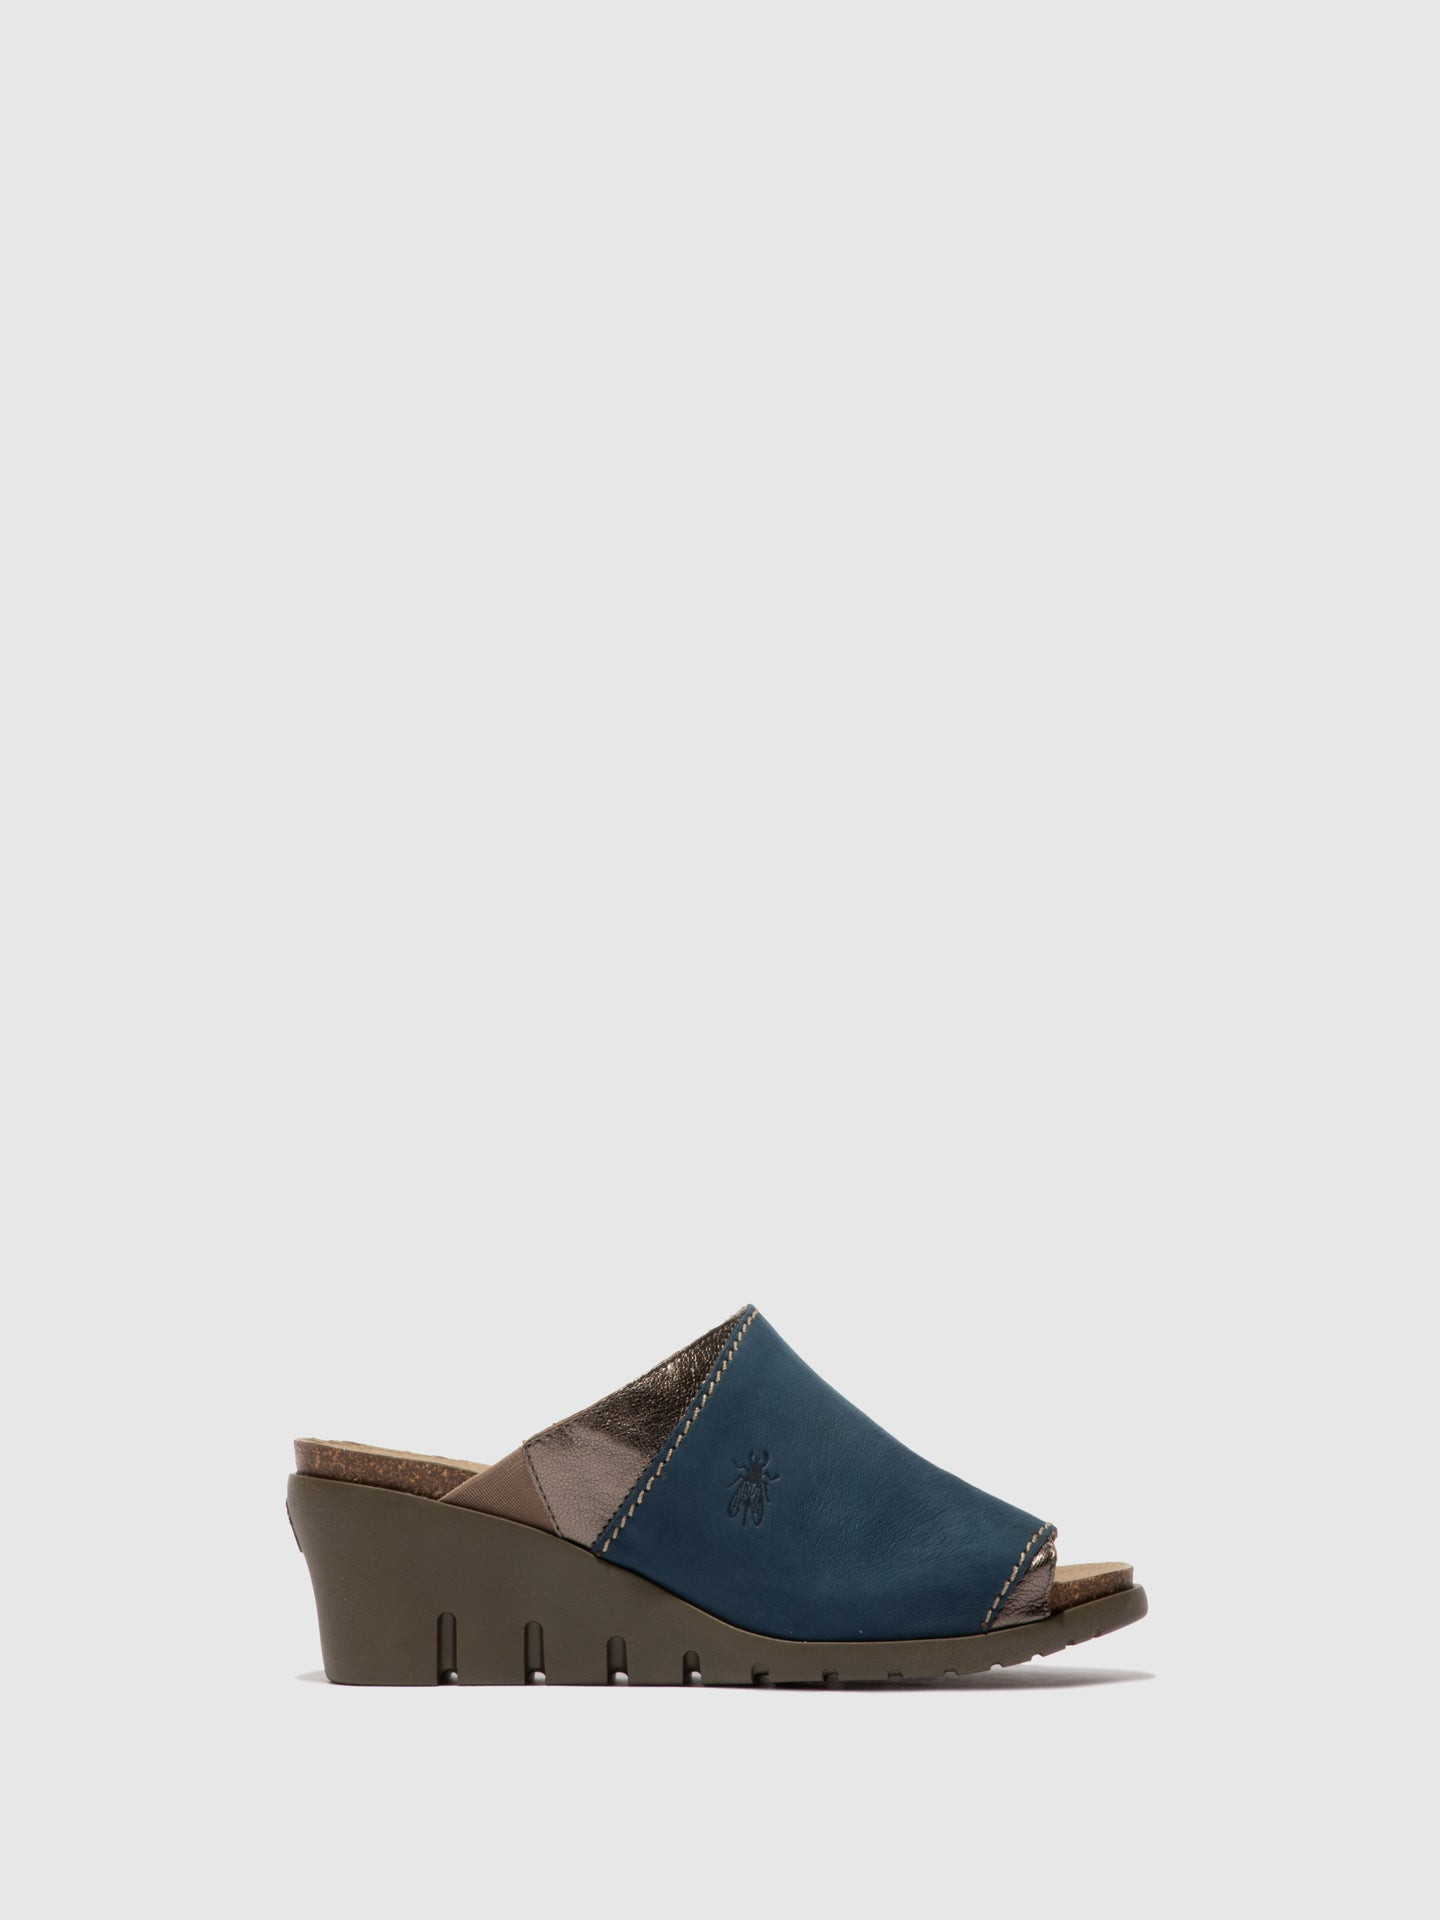 Fly London Open Toe Mules IDAR569FLY BLUE/BRONZE